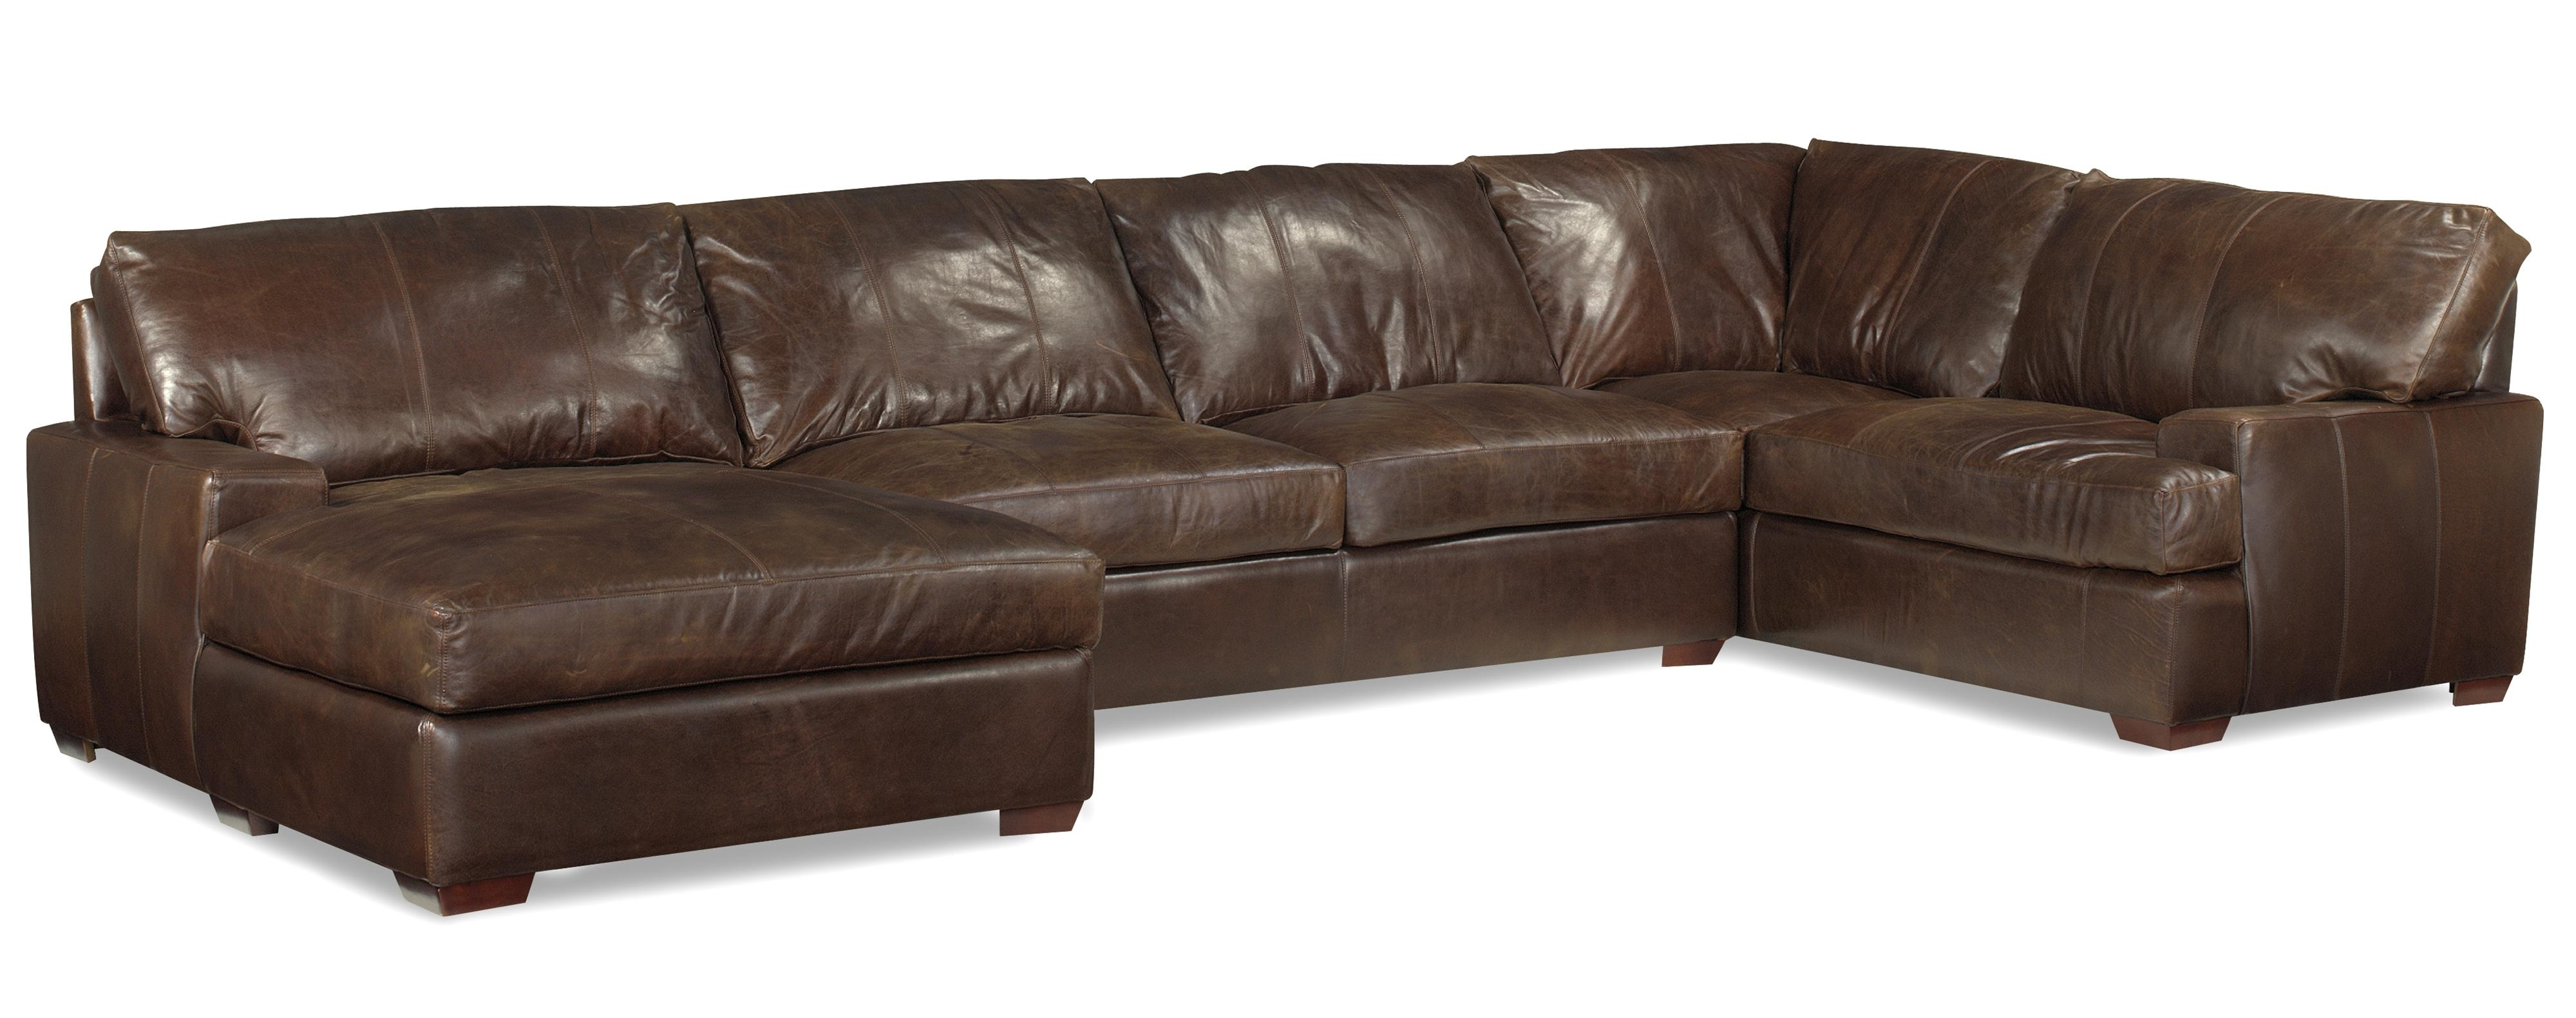 Ikea Ektorp Sectional Loveseat Sectional With Chaise Sectionals Intended For Most Popular Leather Sectionals With Chaise (View 5 of 15)